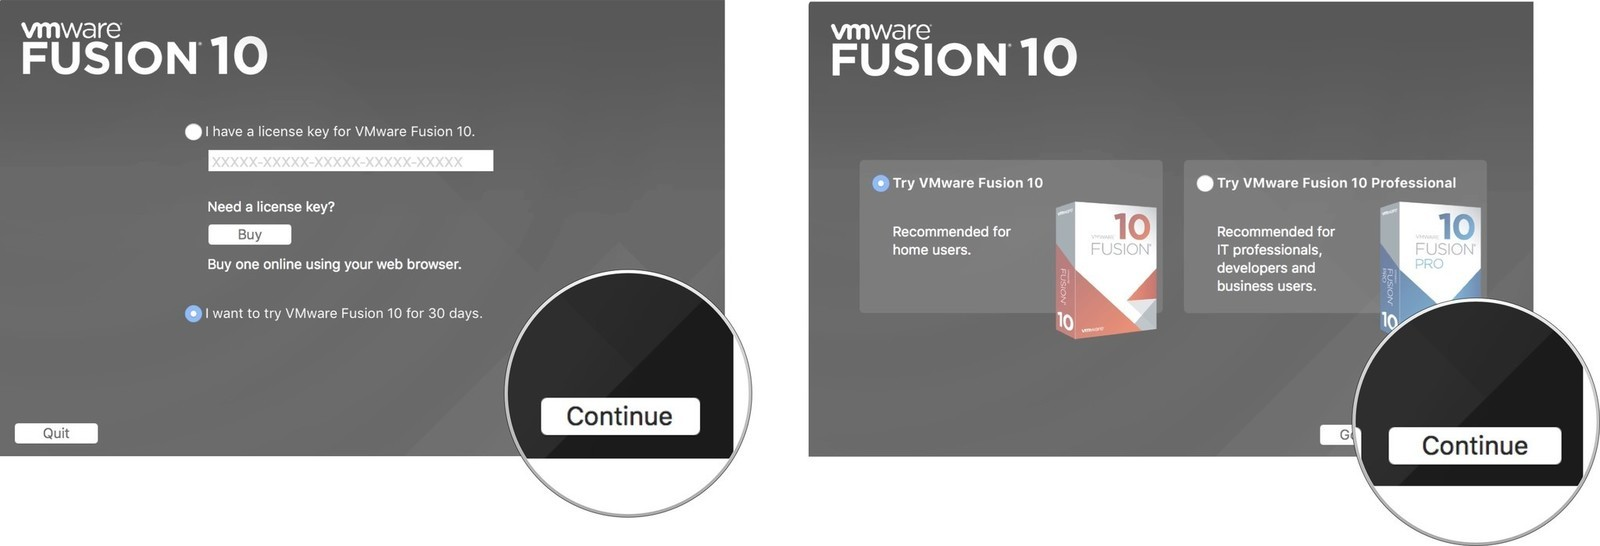 How to run Windows 10 on your Mac using VMware's Fusion 10